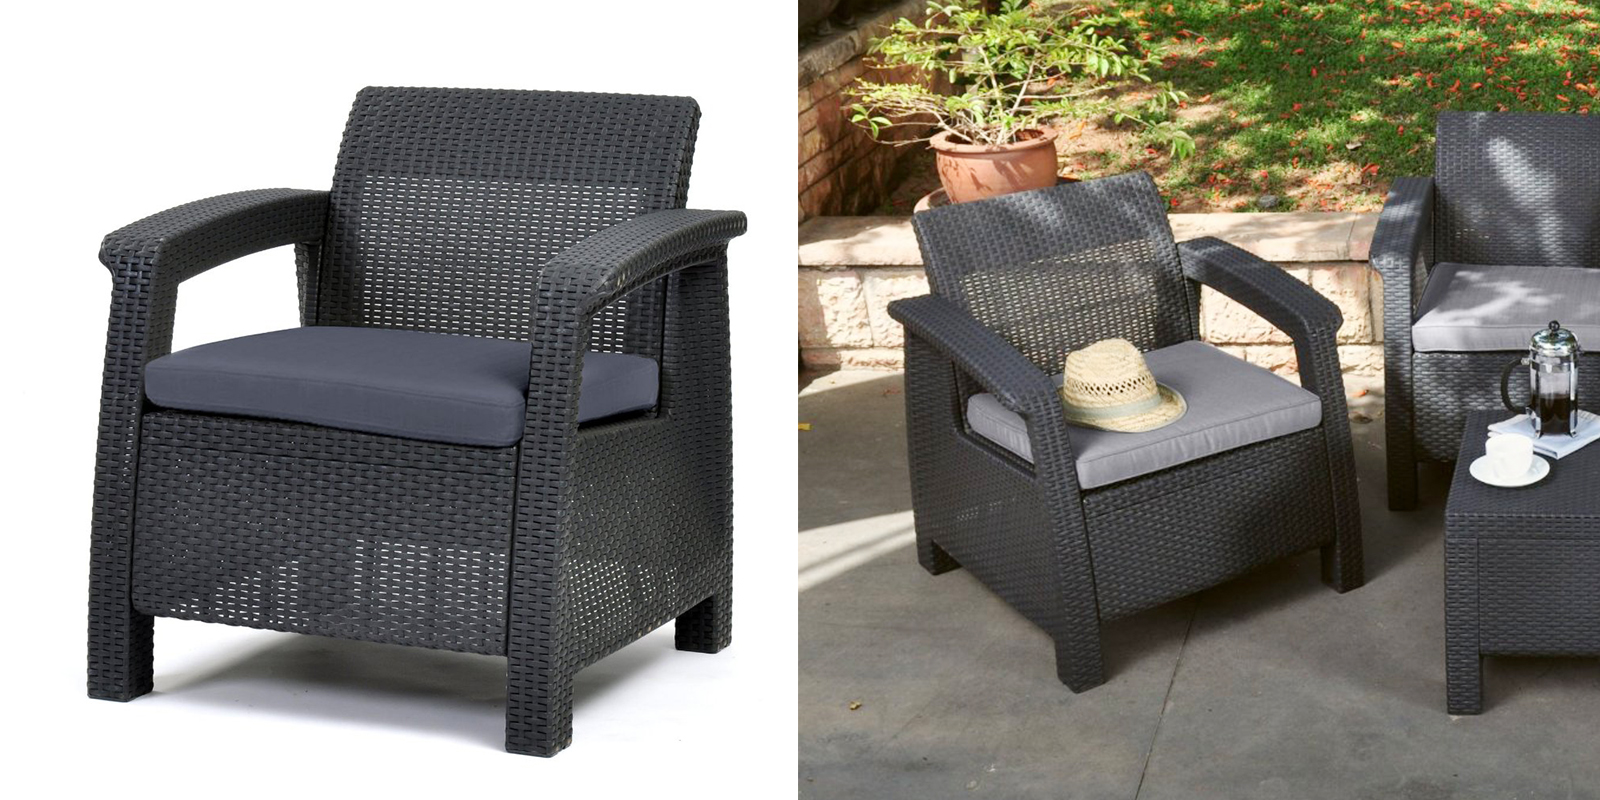 Patio Chair - All-Weather Outdoor Armchair